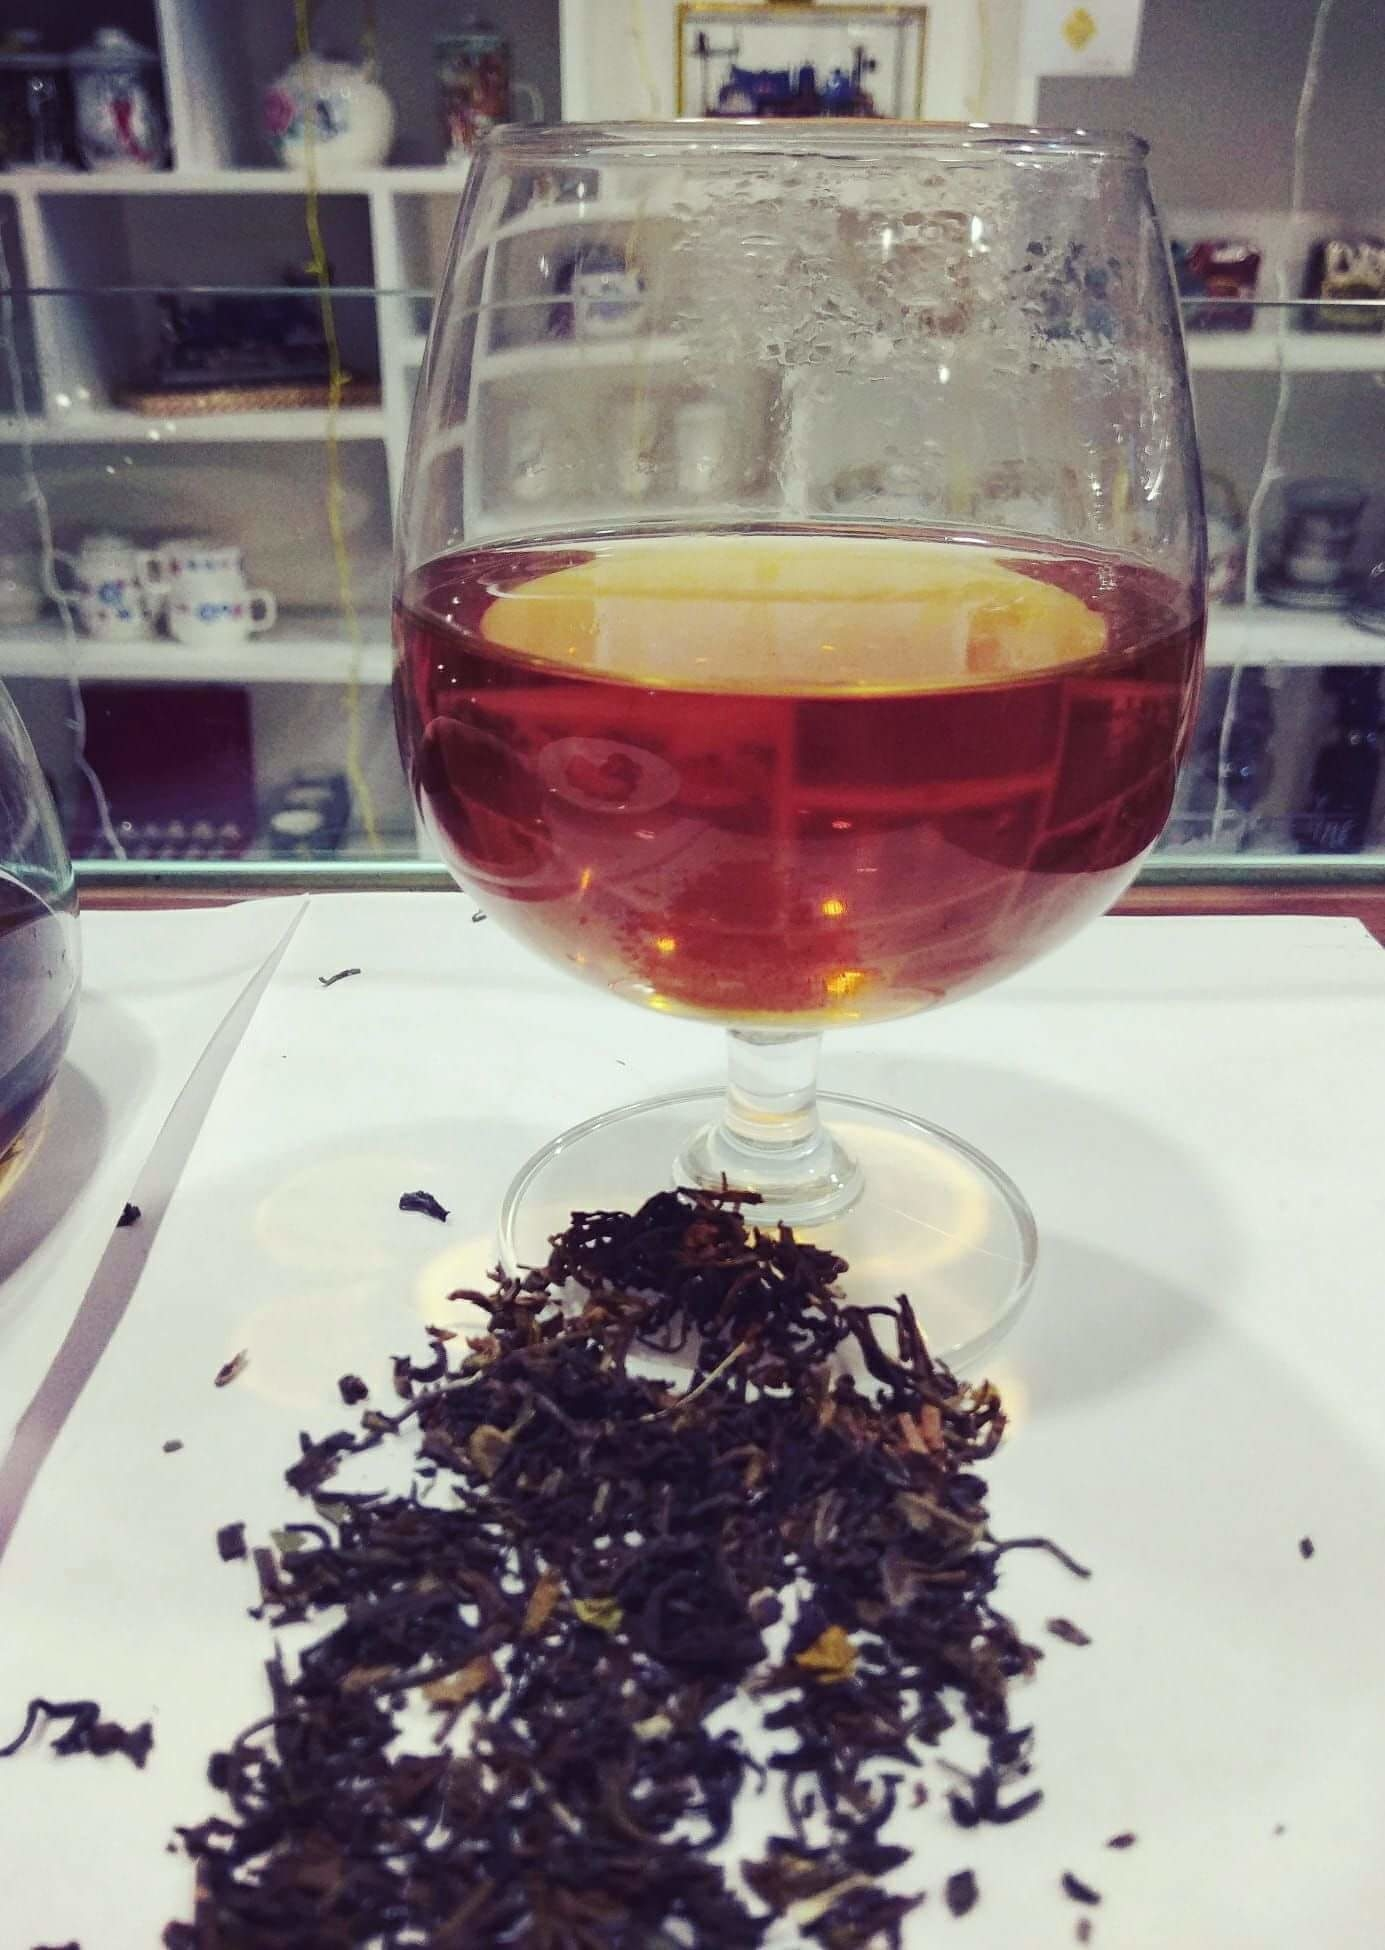 """Tea Connoisseur Sushmita Das Gupta says """"Tea is not very different from wine. If  you were to compare their aromas and flavours, High-end tea is quite  capable of triggering our senses the same way fine wine does"""" ..  #DineDazzleDive #WhistlingKettle #Kolkata"""